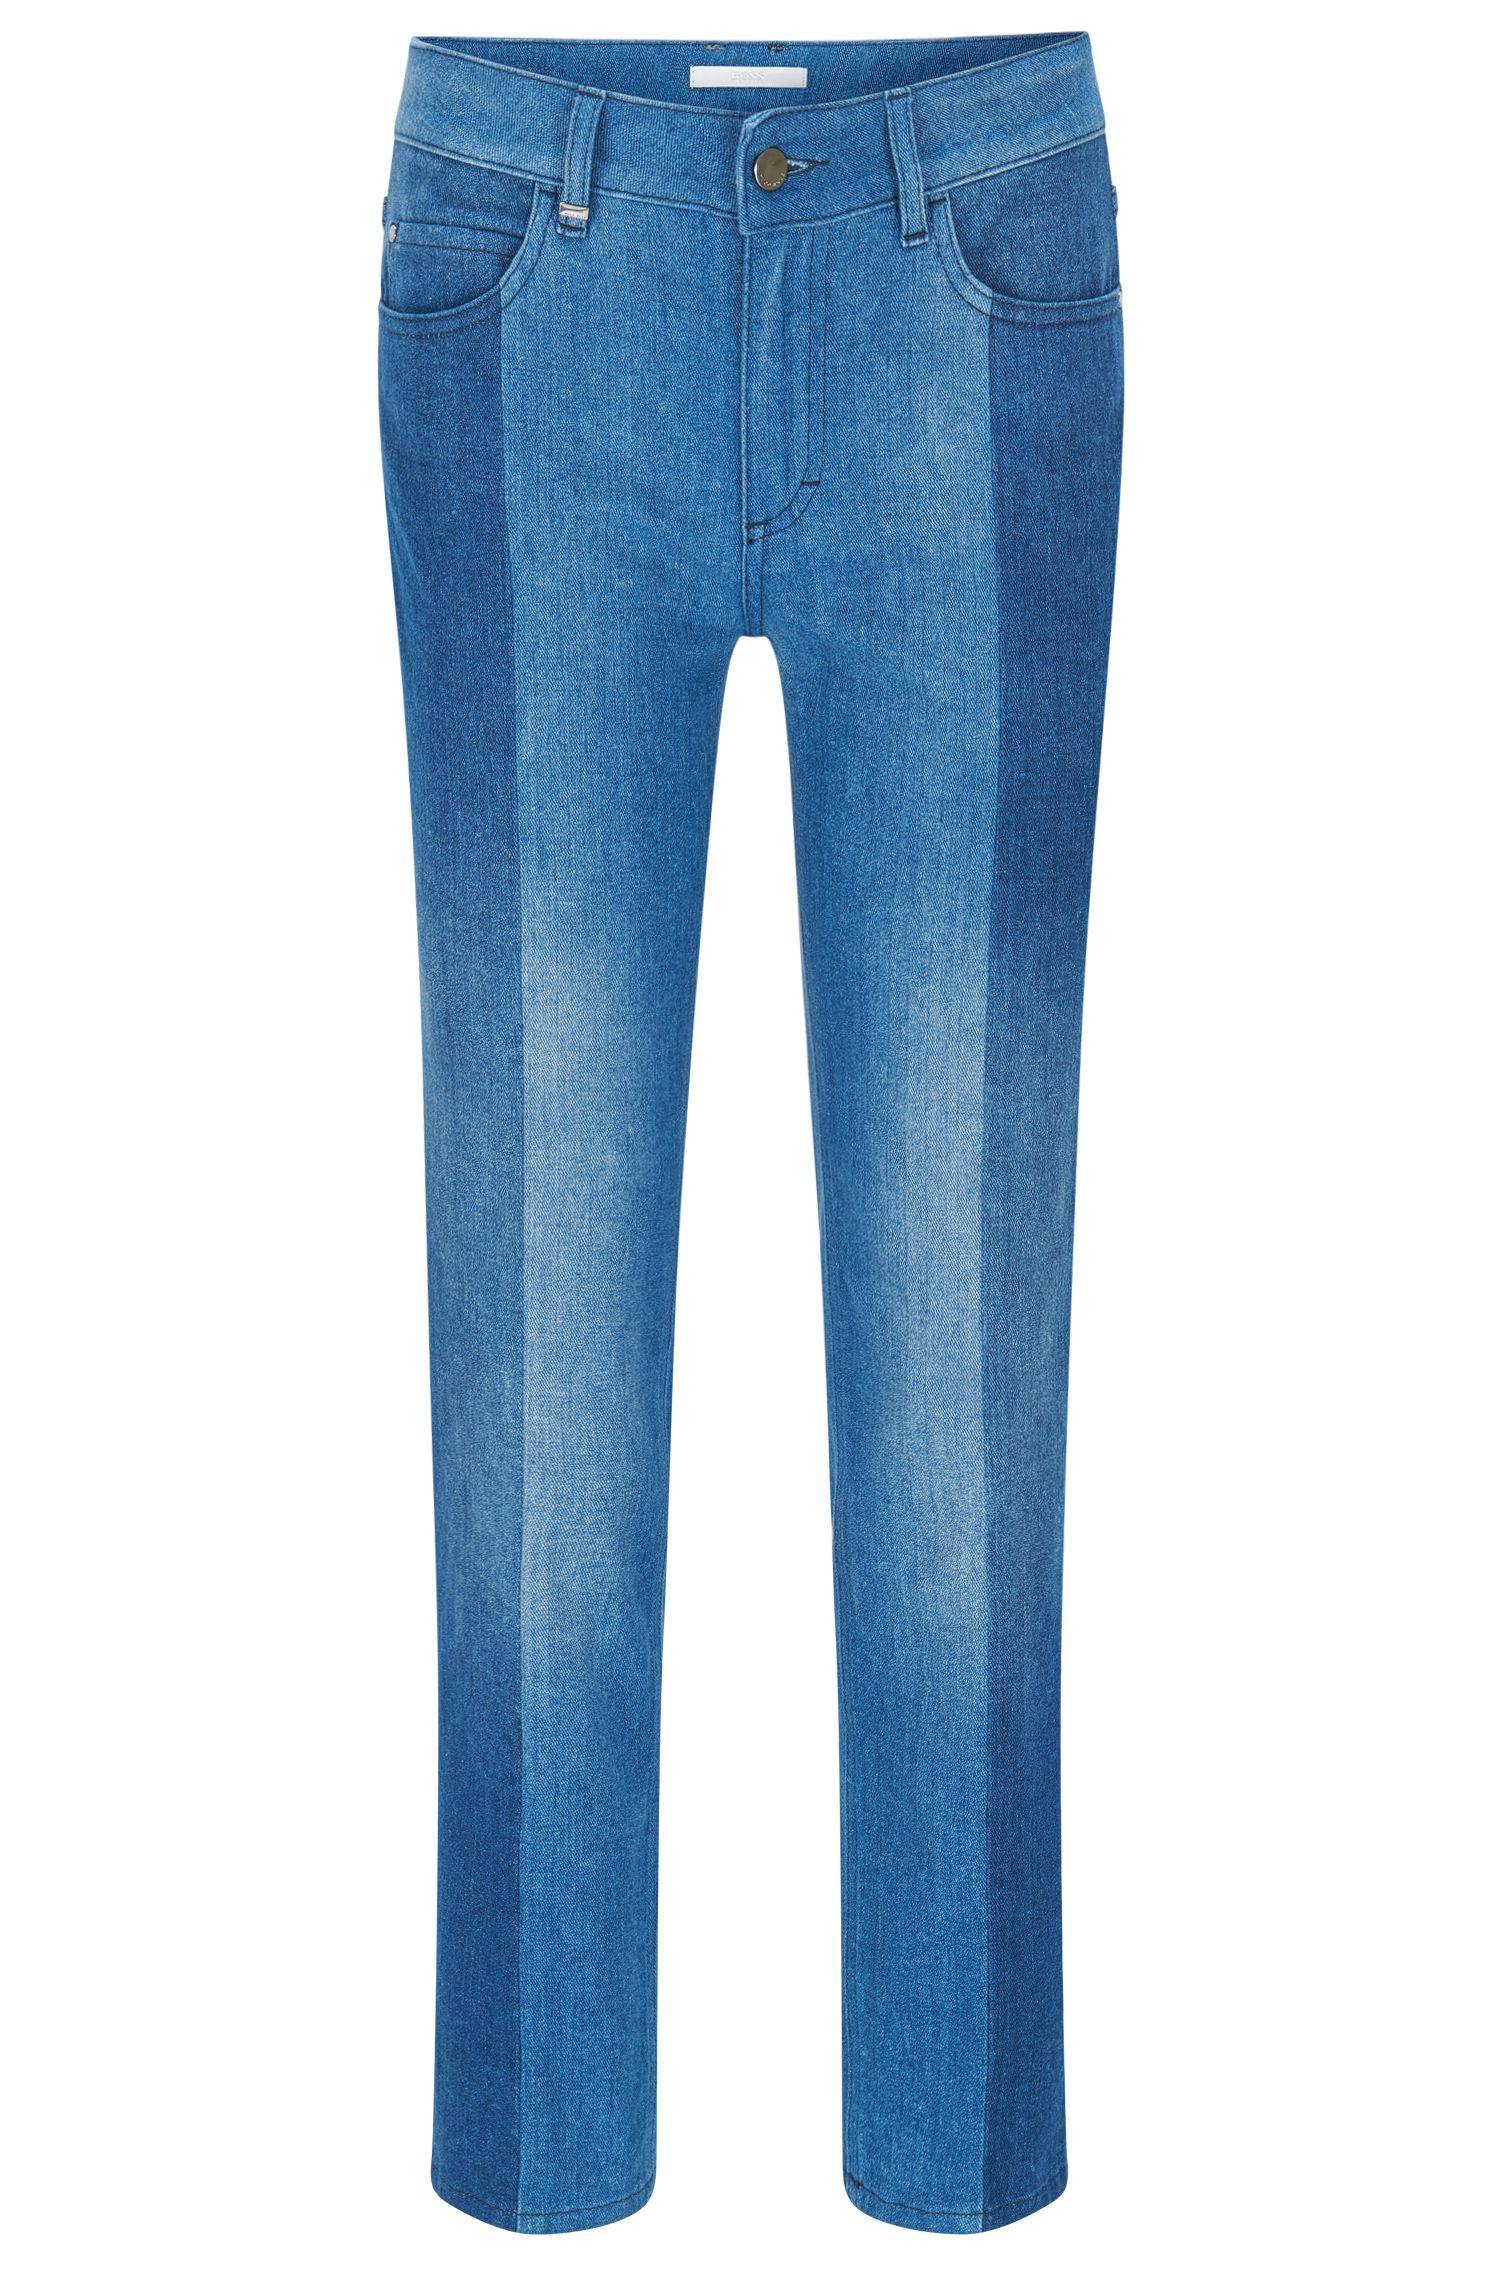 Relaxed-fit jeans in premium Italian denim